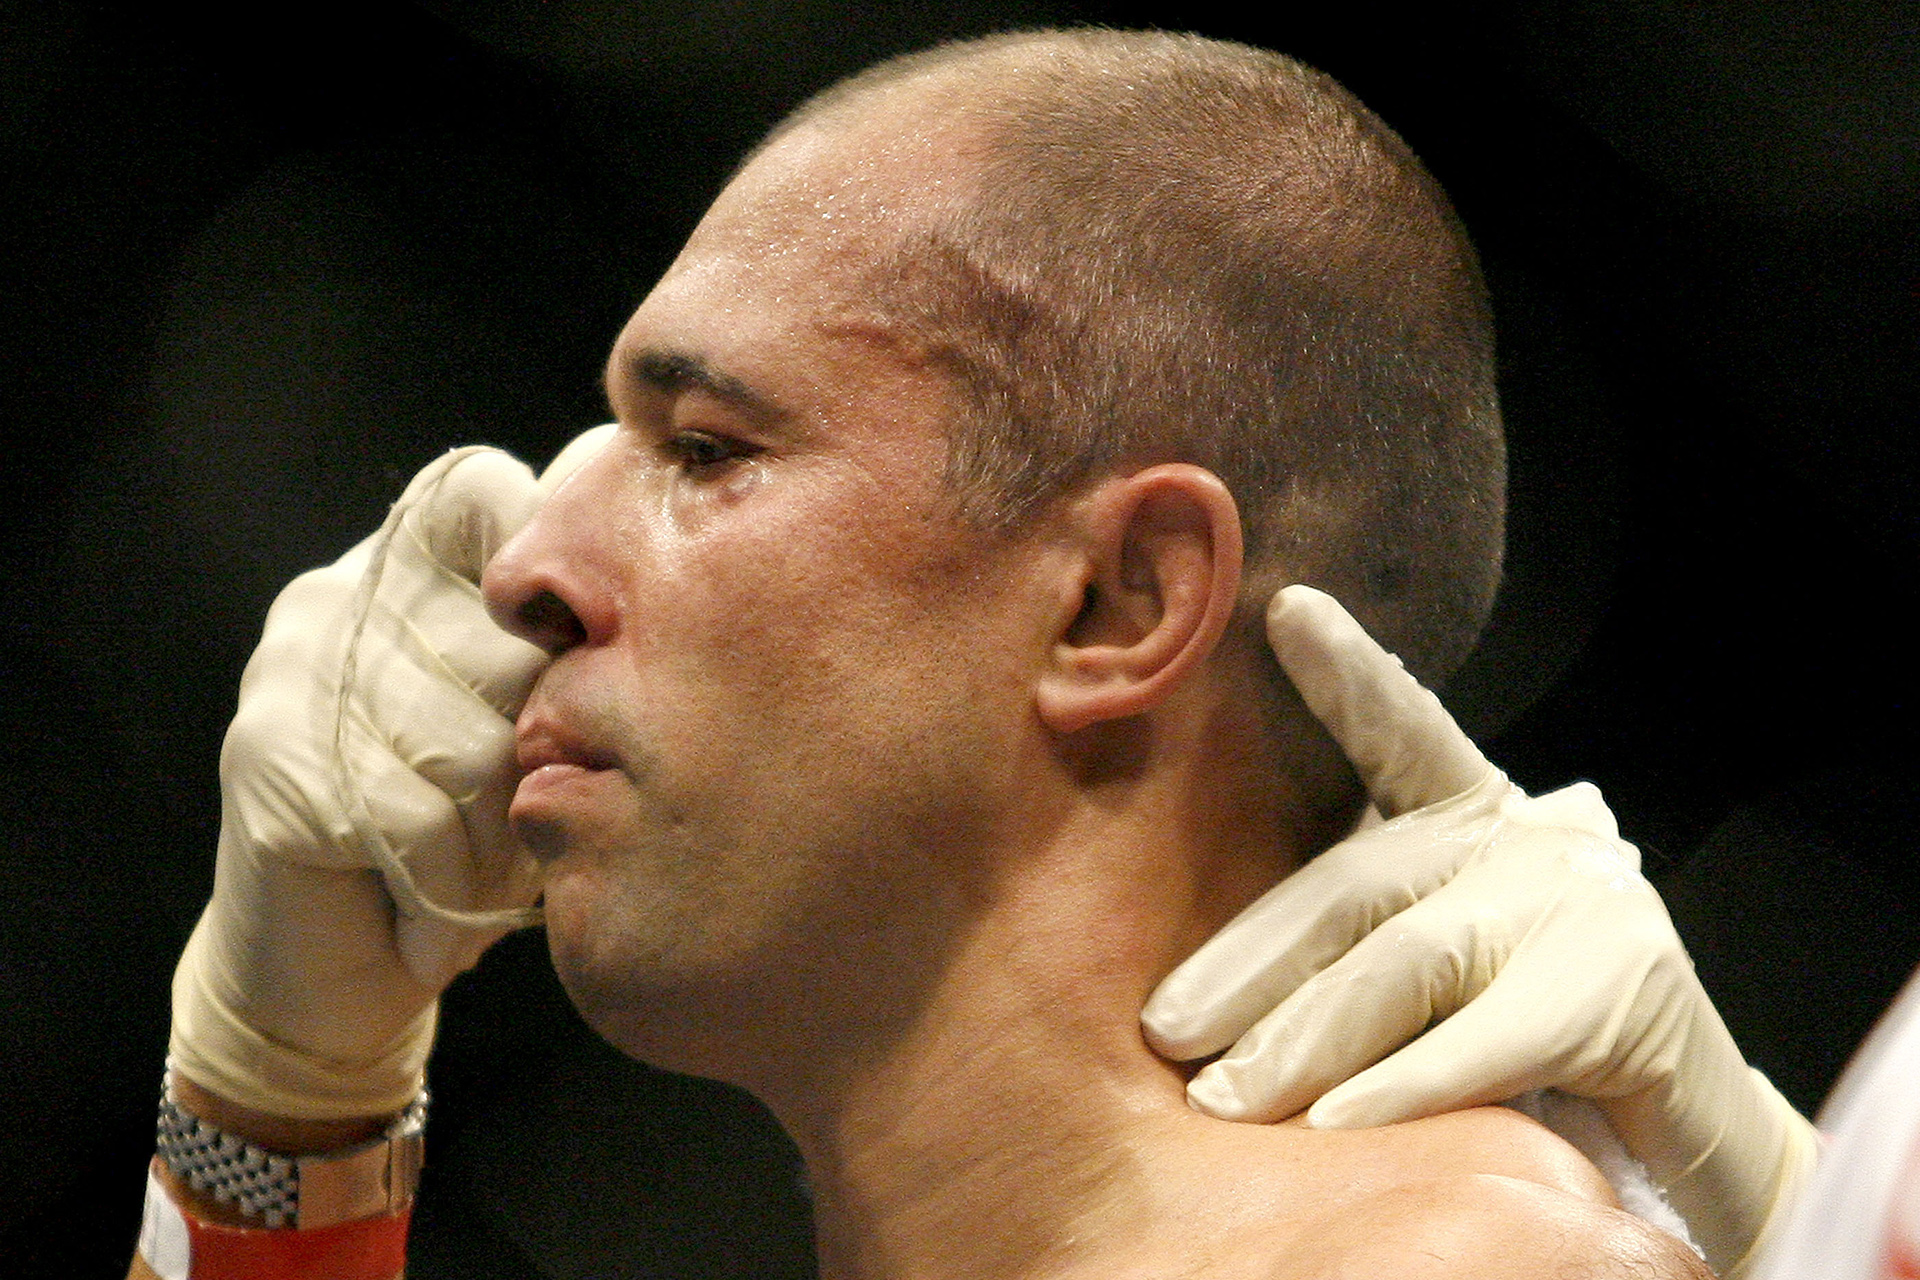 Royce Gracie during Ultimate Fighting Championship 60 - Hughes vs Gracie at Staples Center in Los Angeles, California, United States. (Photo by Gregg DeGuire/Getty Images)